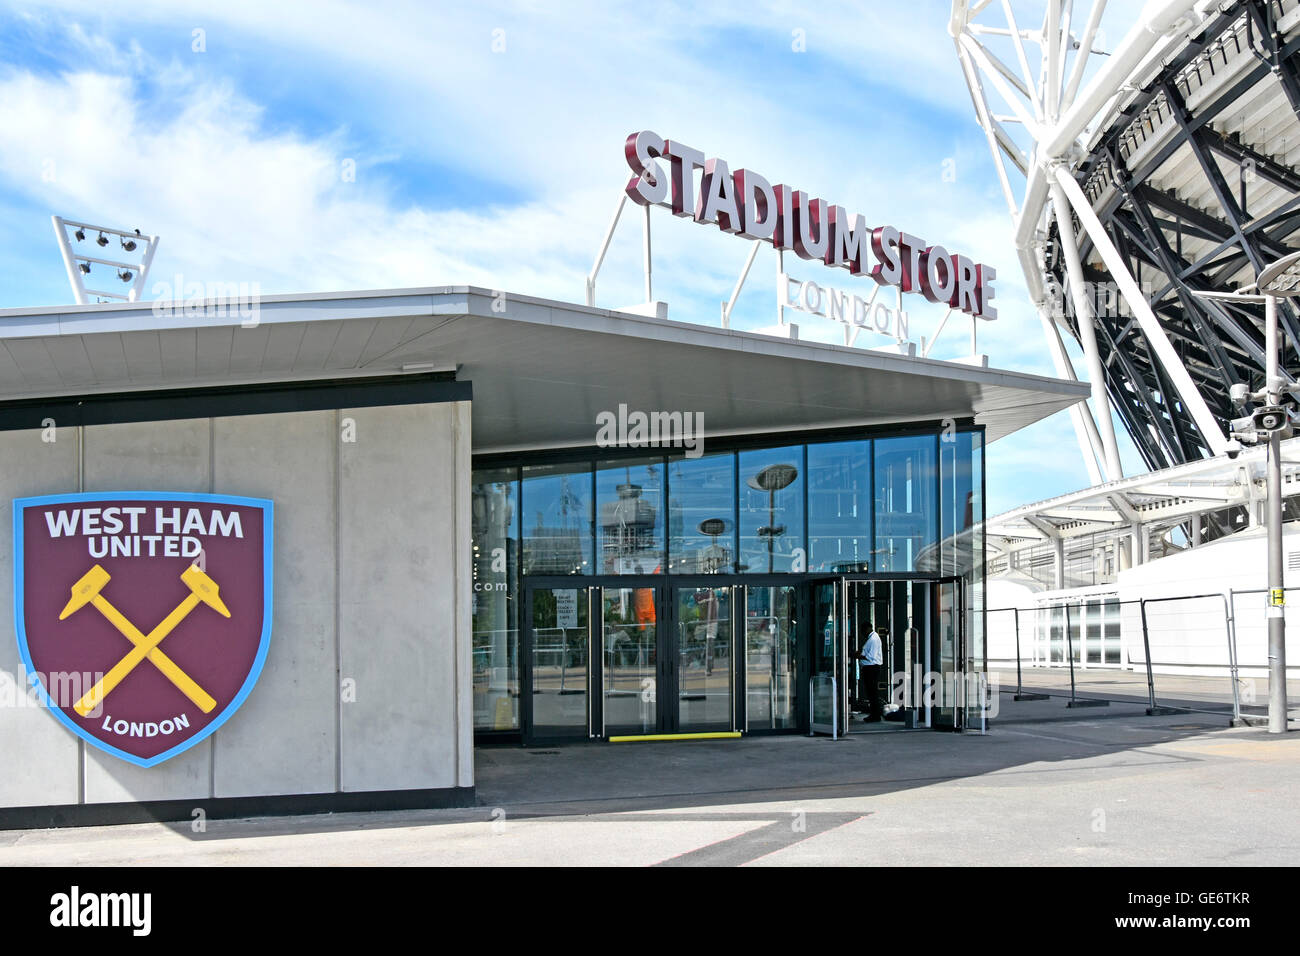 West Ham United logo on new London Stadium Store beside the converted 2012 Olympic Stadium in the Queen Elizabeth - Stock Image